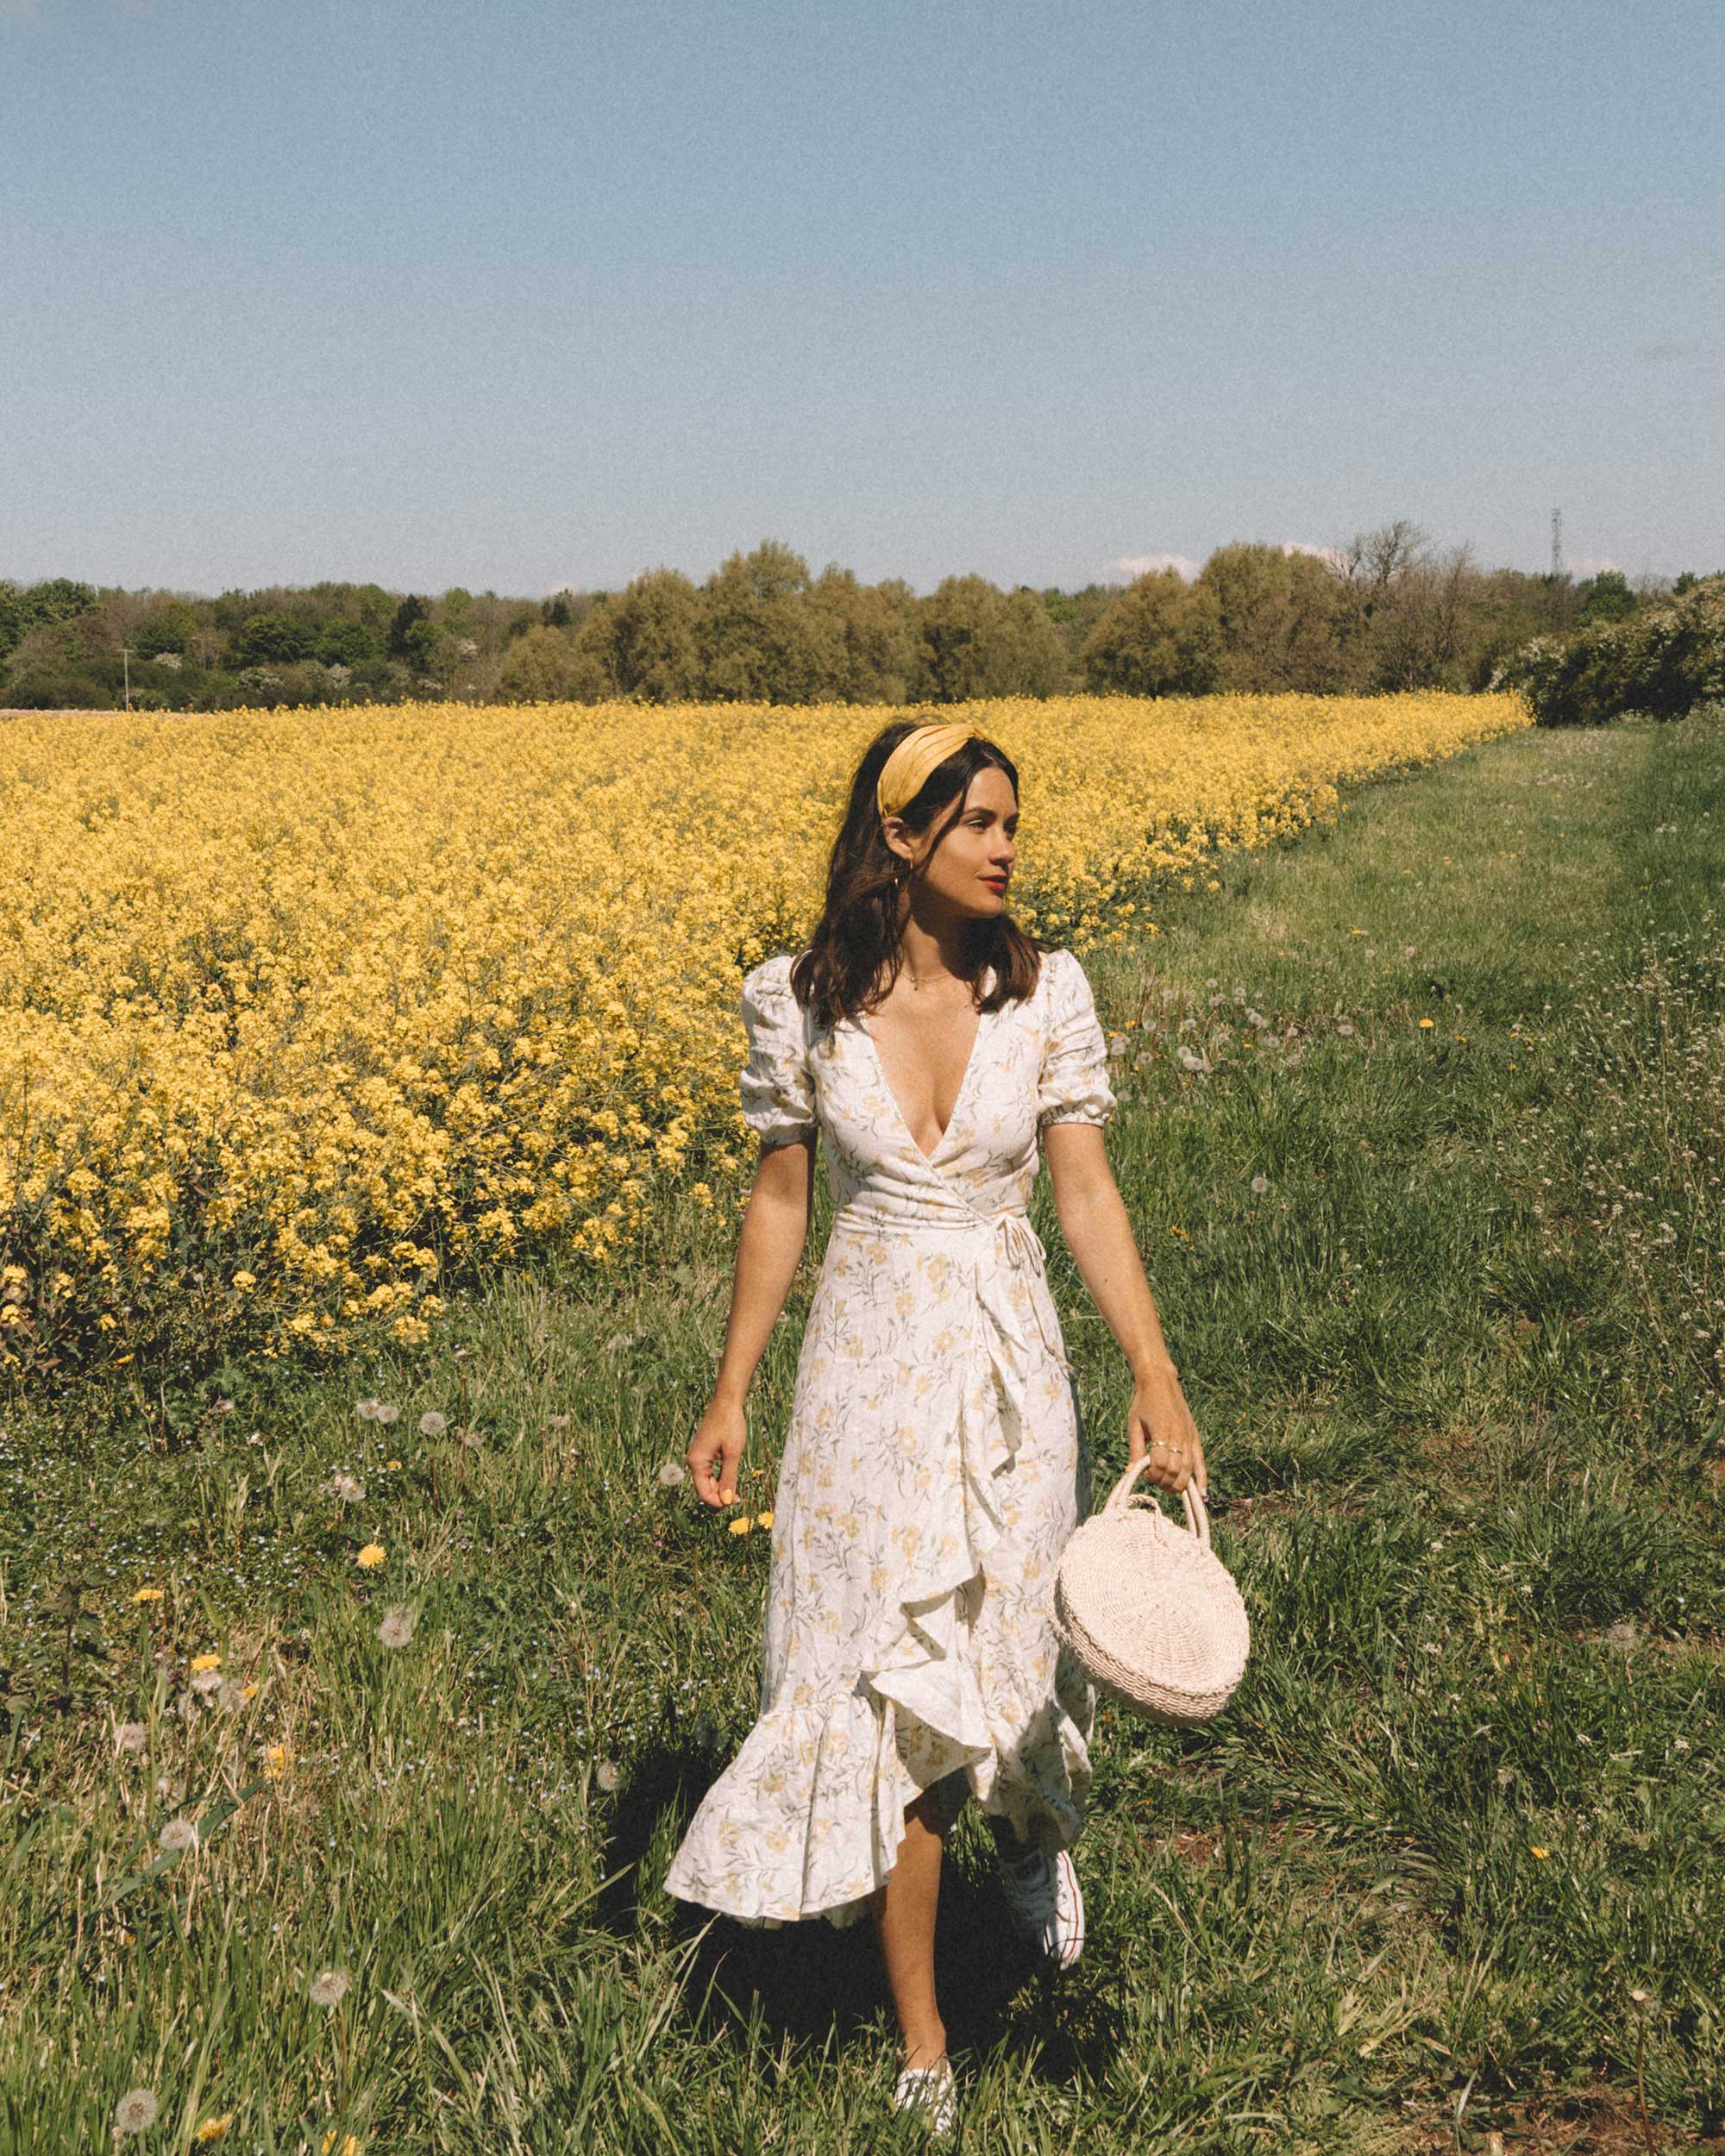 Sarah Butler of Sarah Styles Seattle wears And Other Stories Ruffled Linen Wrap Midi Dress and round woven bag in England Countryside for the perfect floral summer dress | @sarahchristine 18.jpg